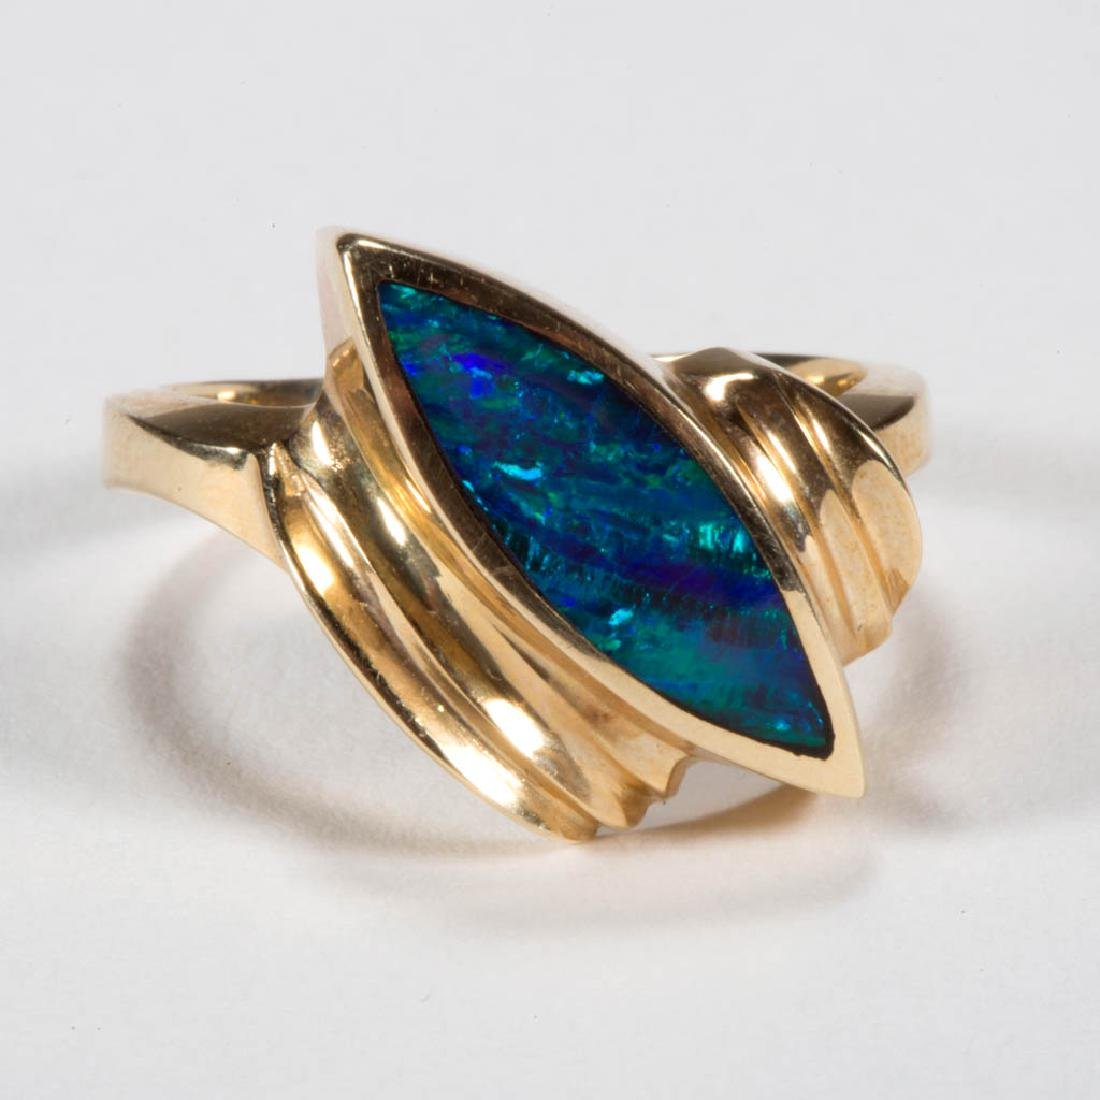 VINTAGE 14K GOLD AND OPAL LADY'S RING